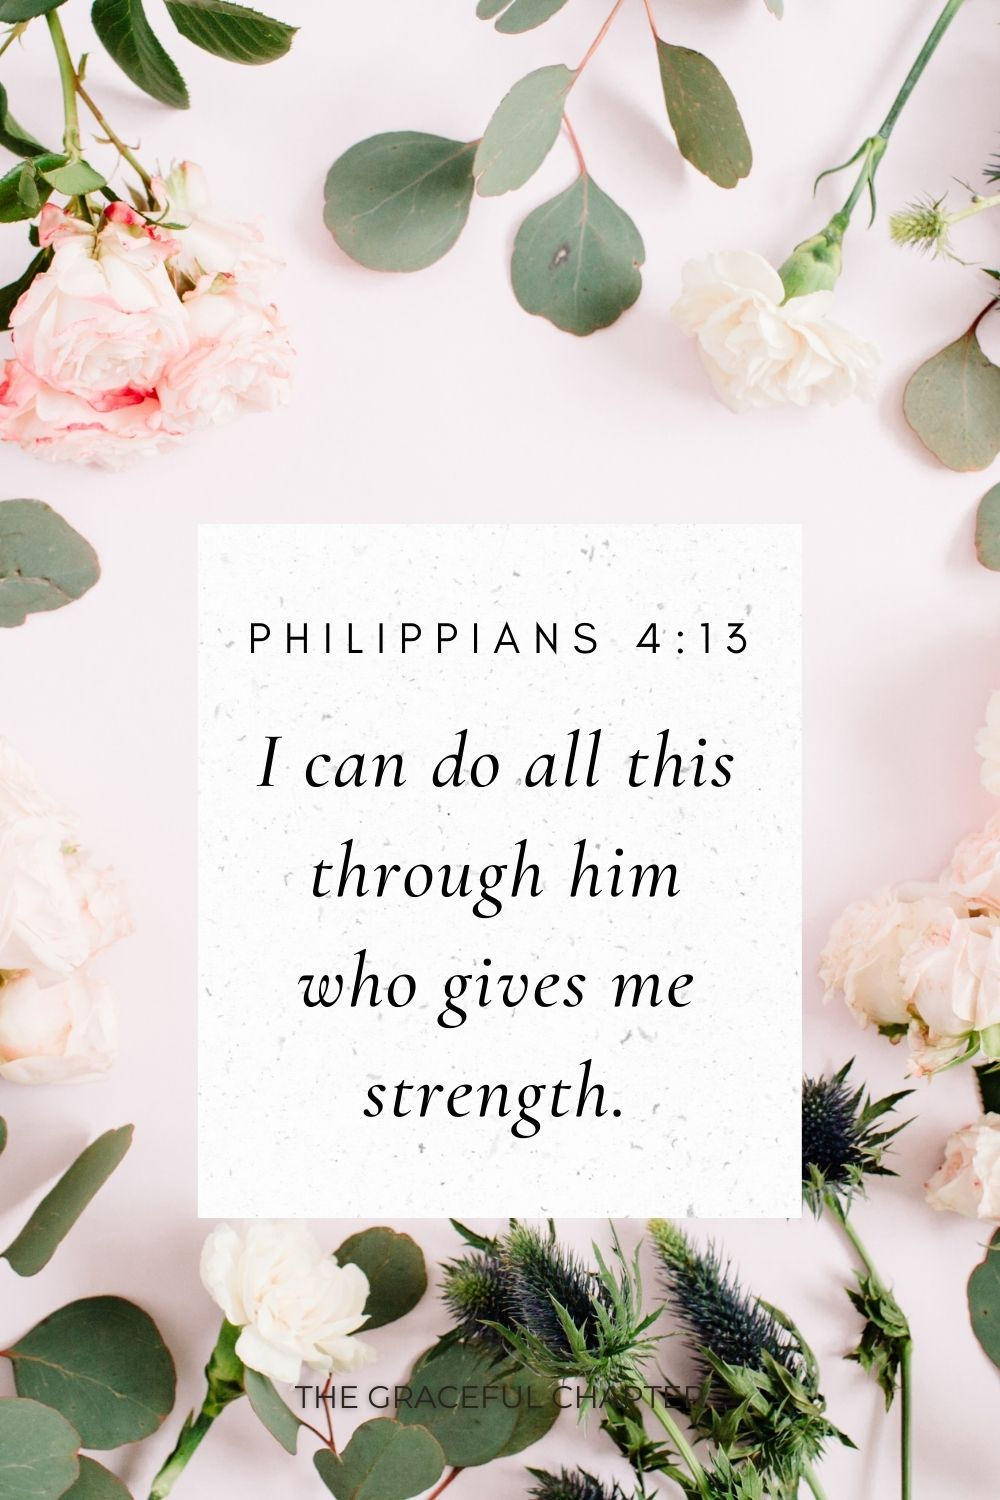 I can do all this through him who gives me strength. Philippians 4:13